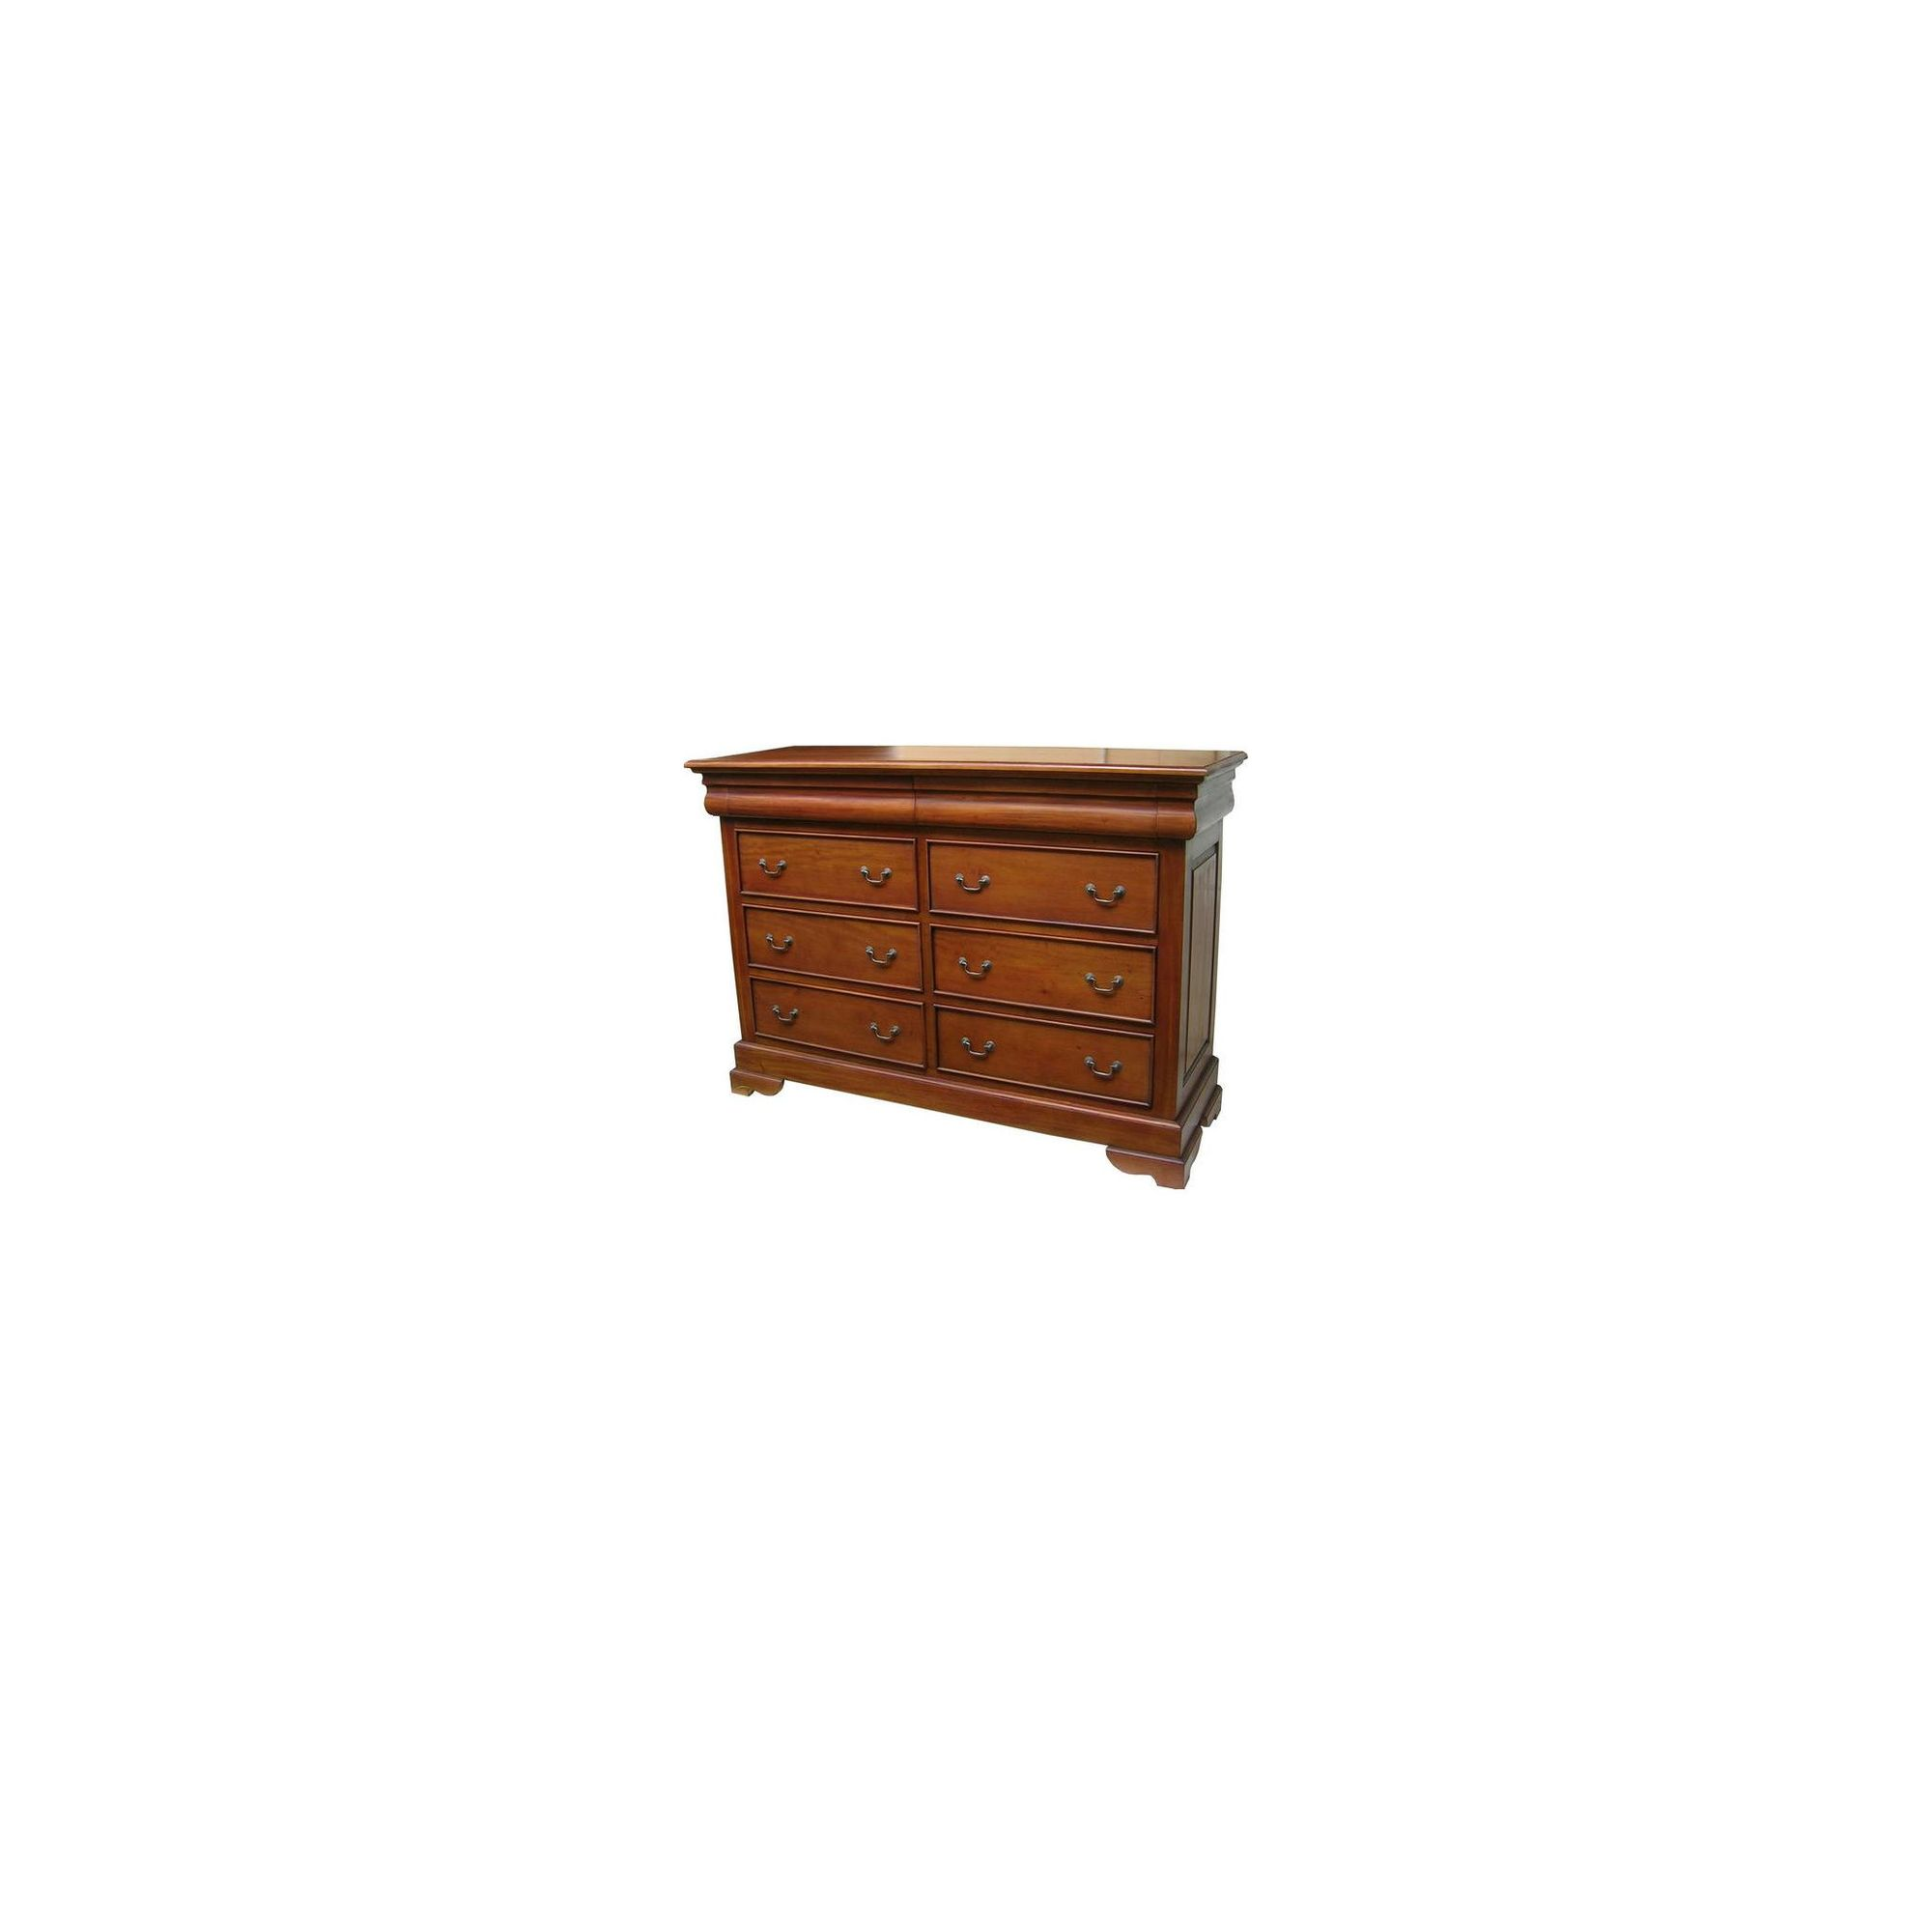 Lock stock and barrel Mahogany 8 Drawer Sleigh Chest in Mahogany - Wax at Tesco Direct